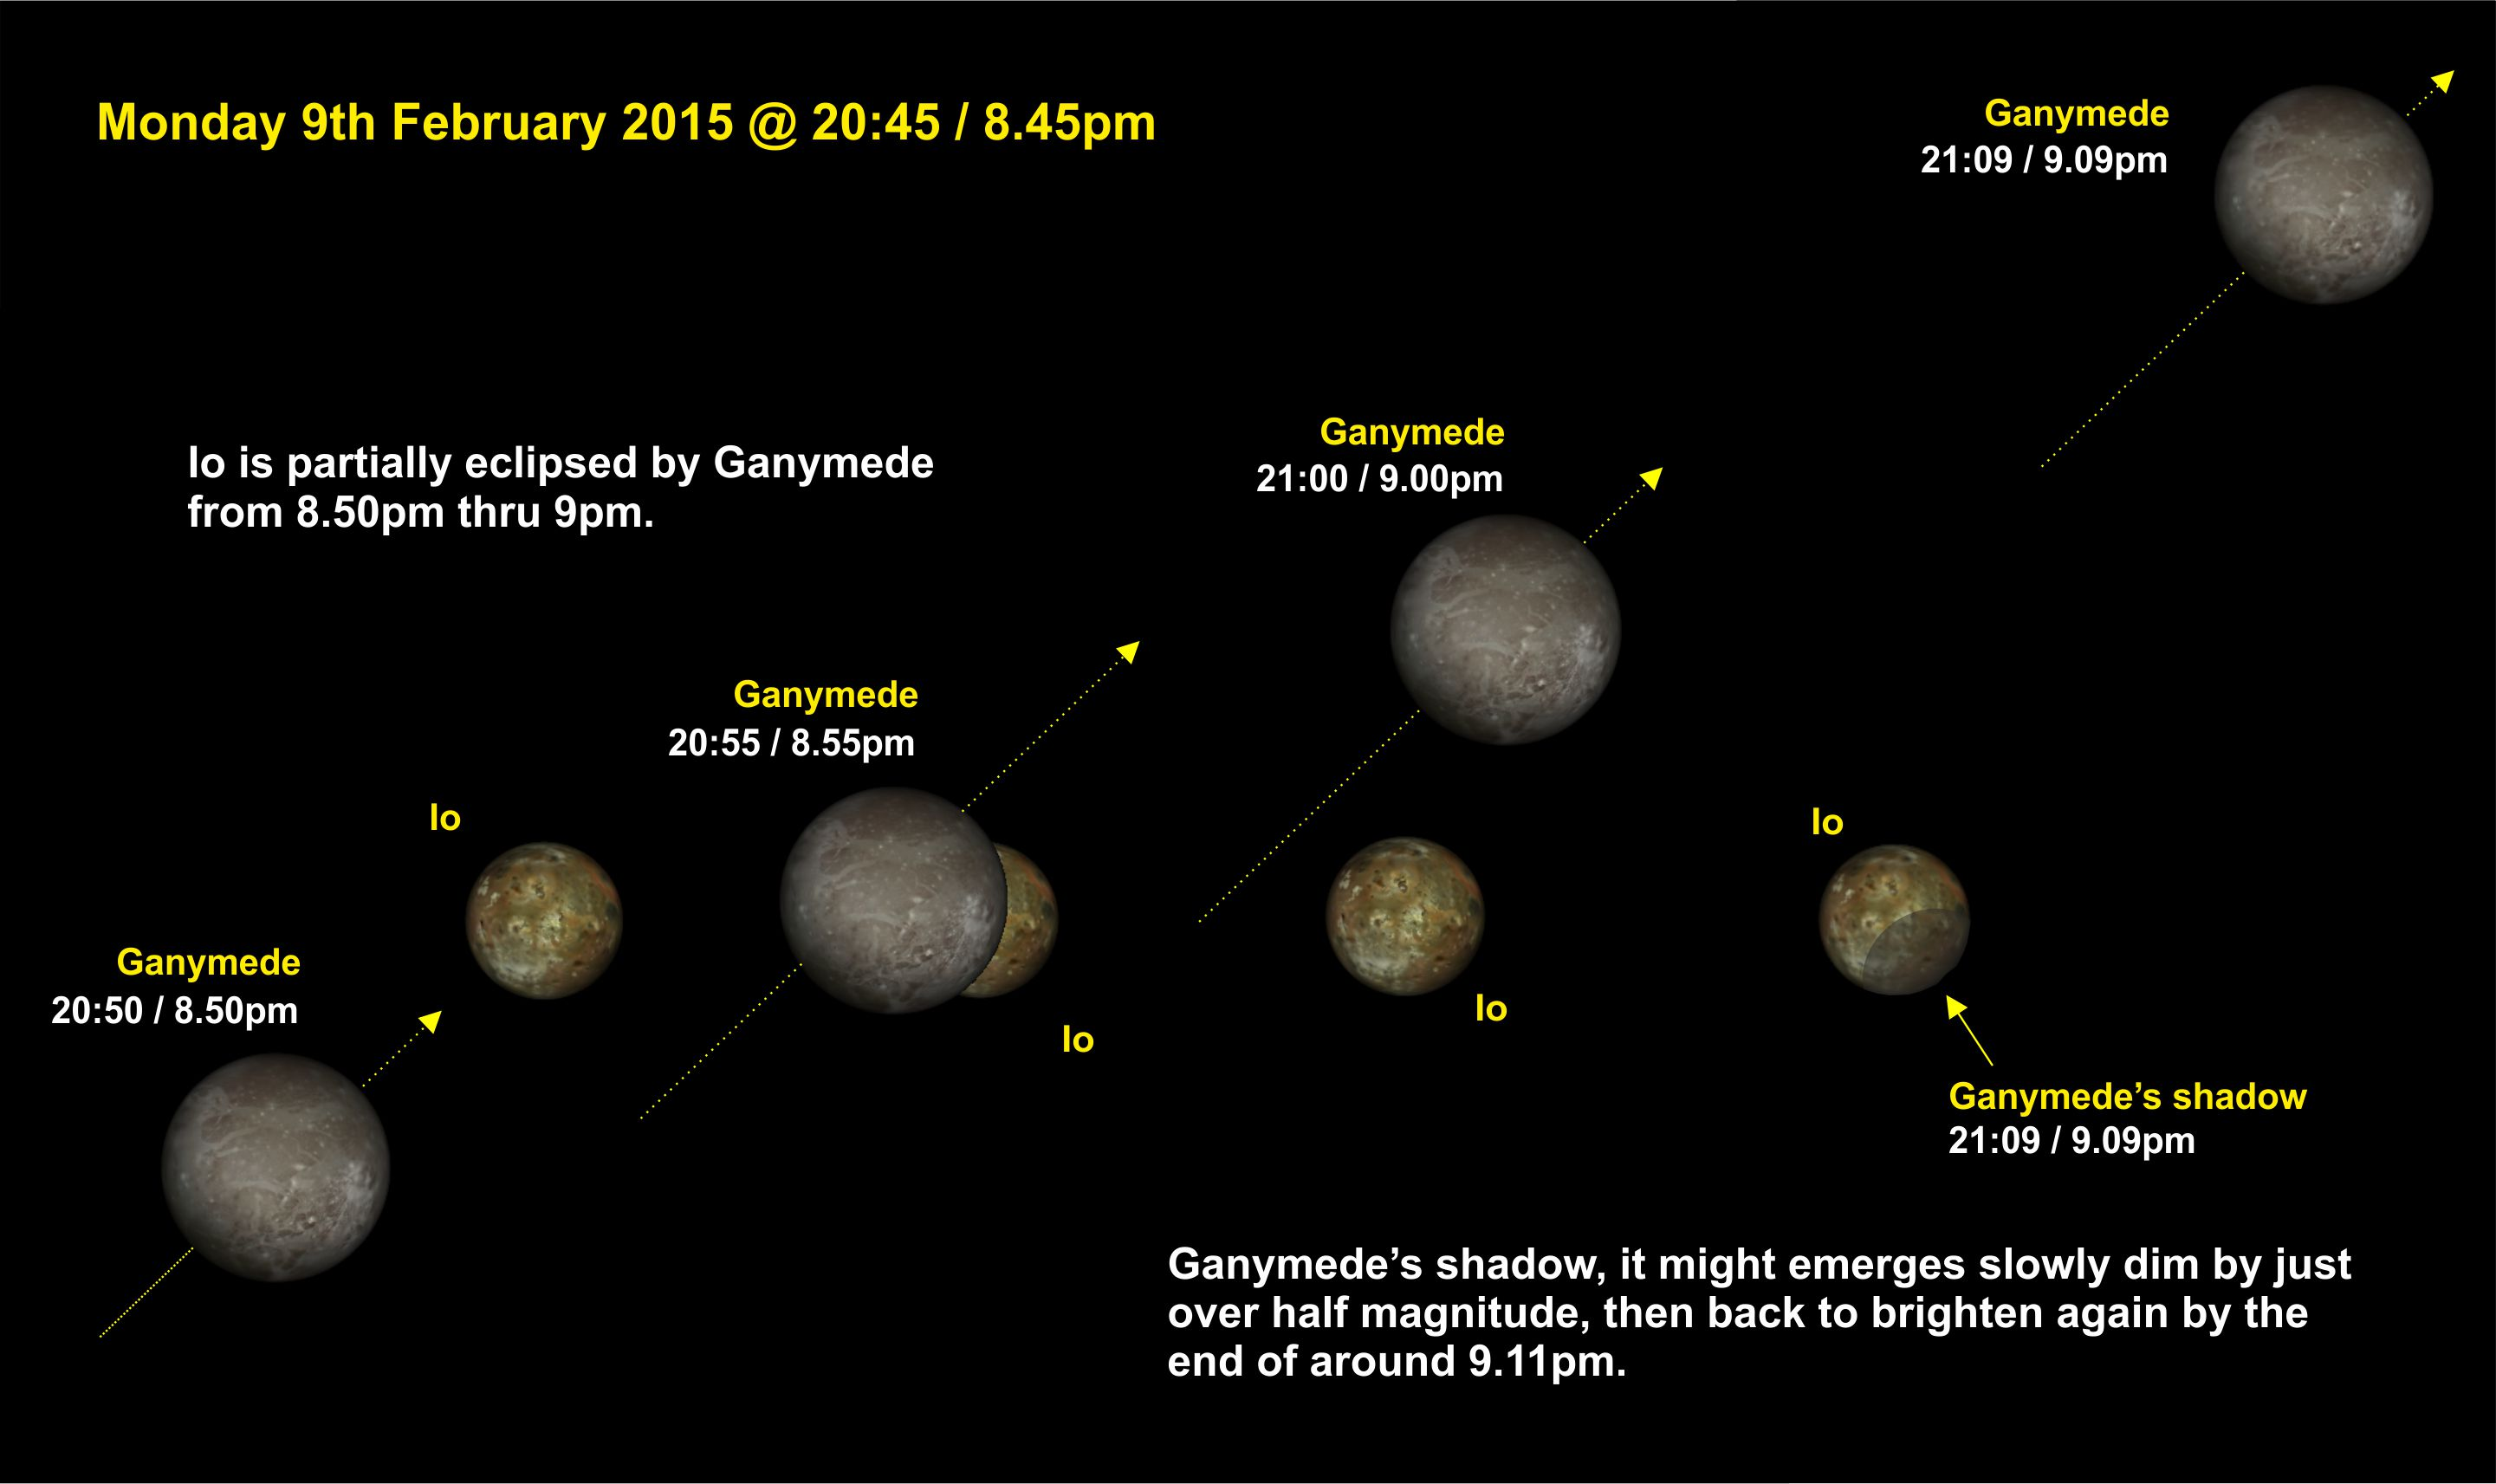 150209-009 Io is eclised by Ganymede & Ganymede's shadow